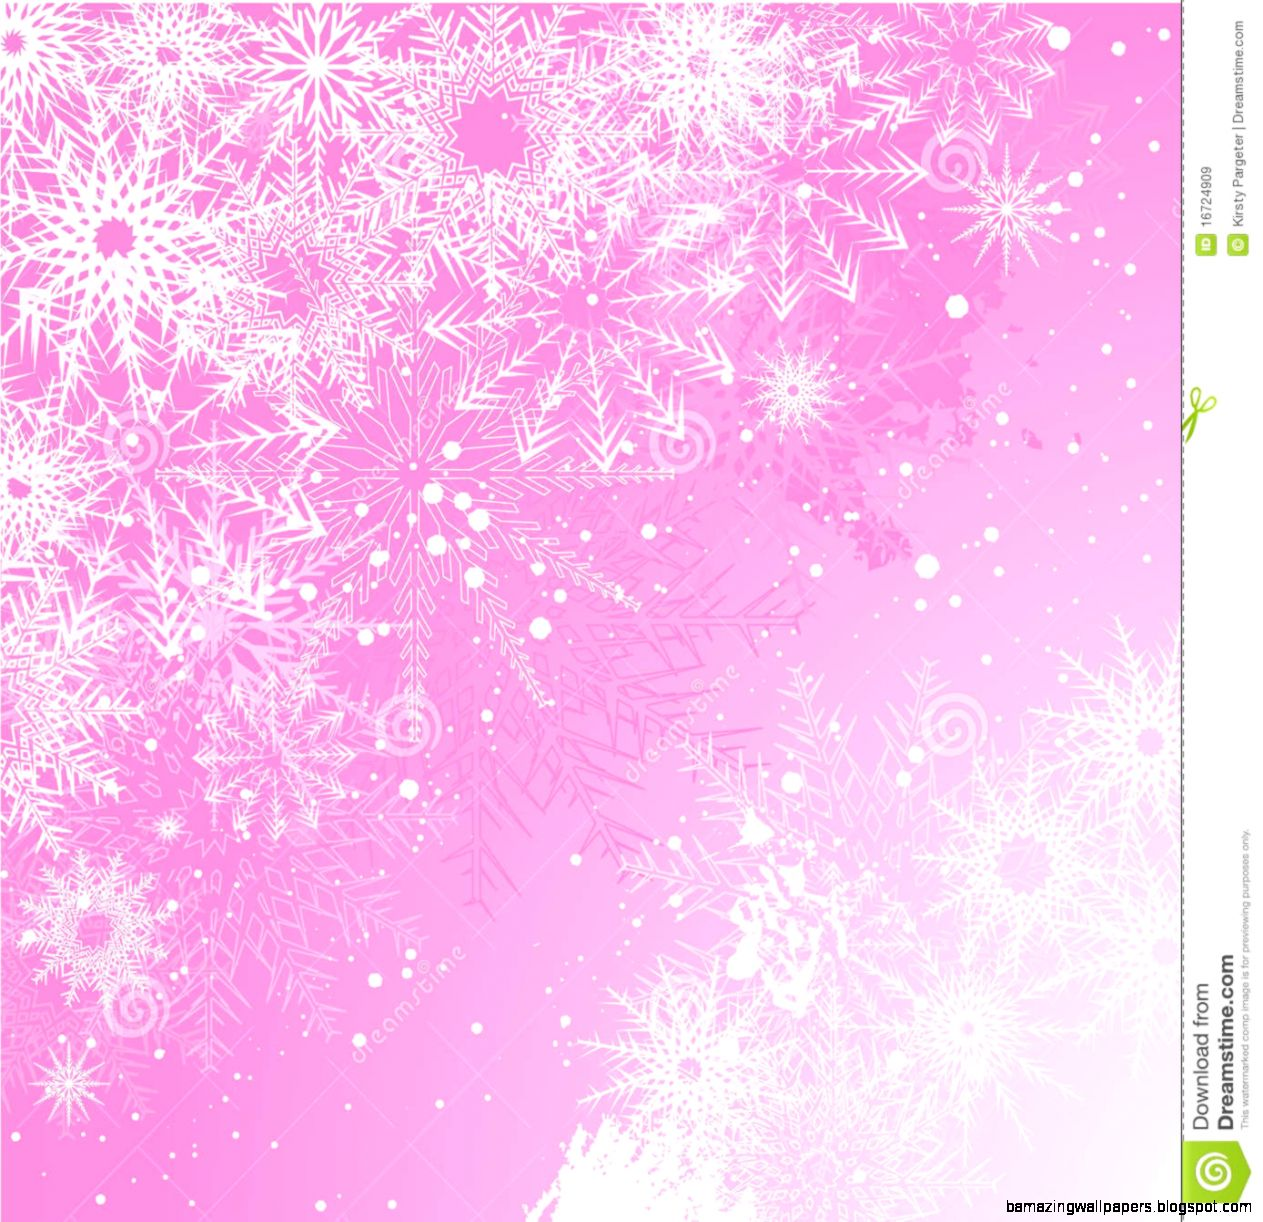 Pink Snowflake Background Royalty Free Stock Images   Image 16724909